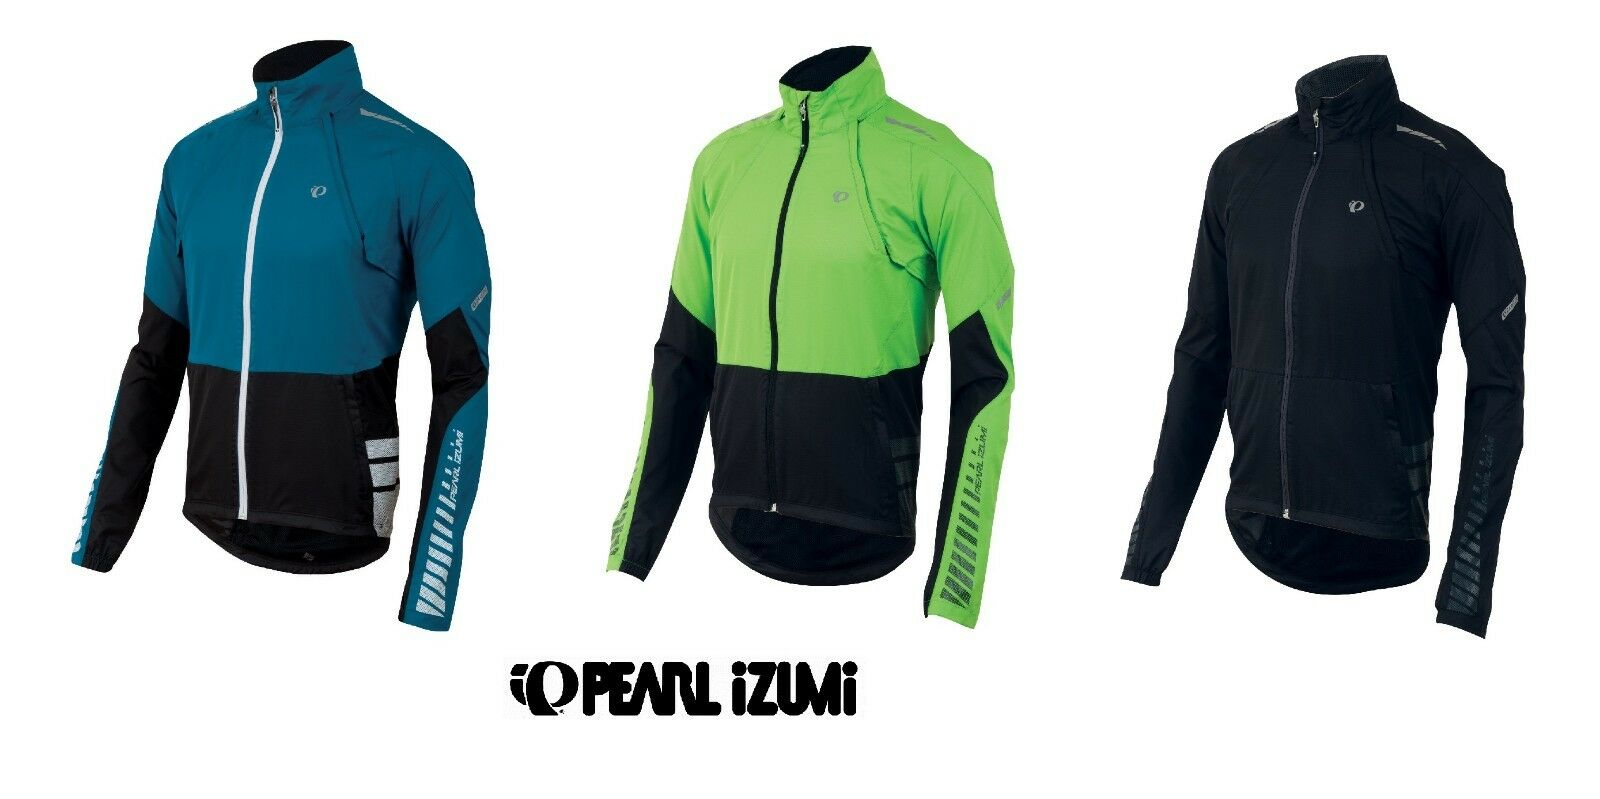 Pearl Izumi ELITE BARRIER CONverdeIBLE JACKET Giacca Vento UVP 129,95  nuovo  175